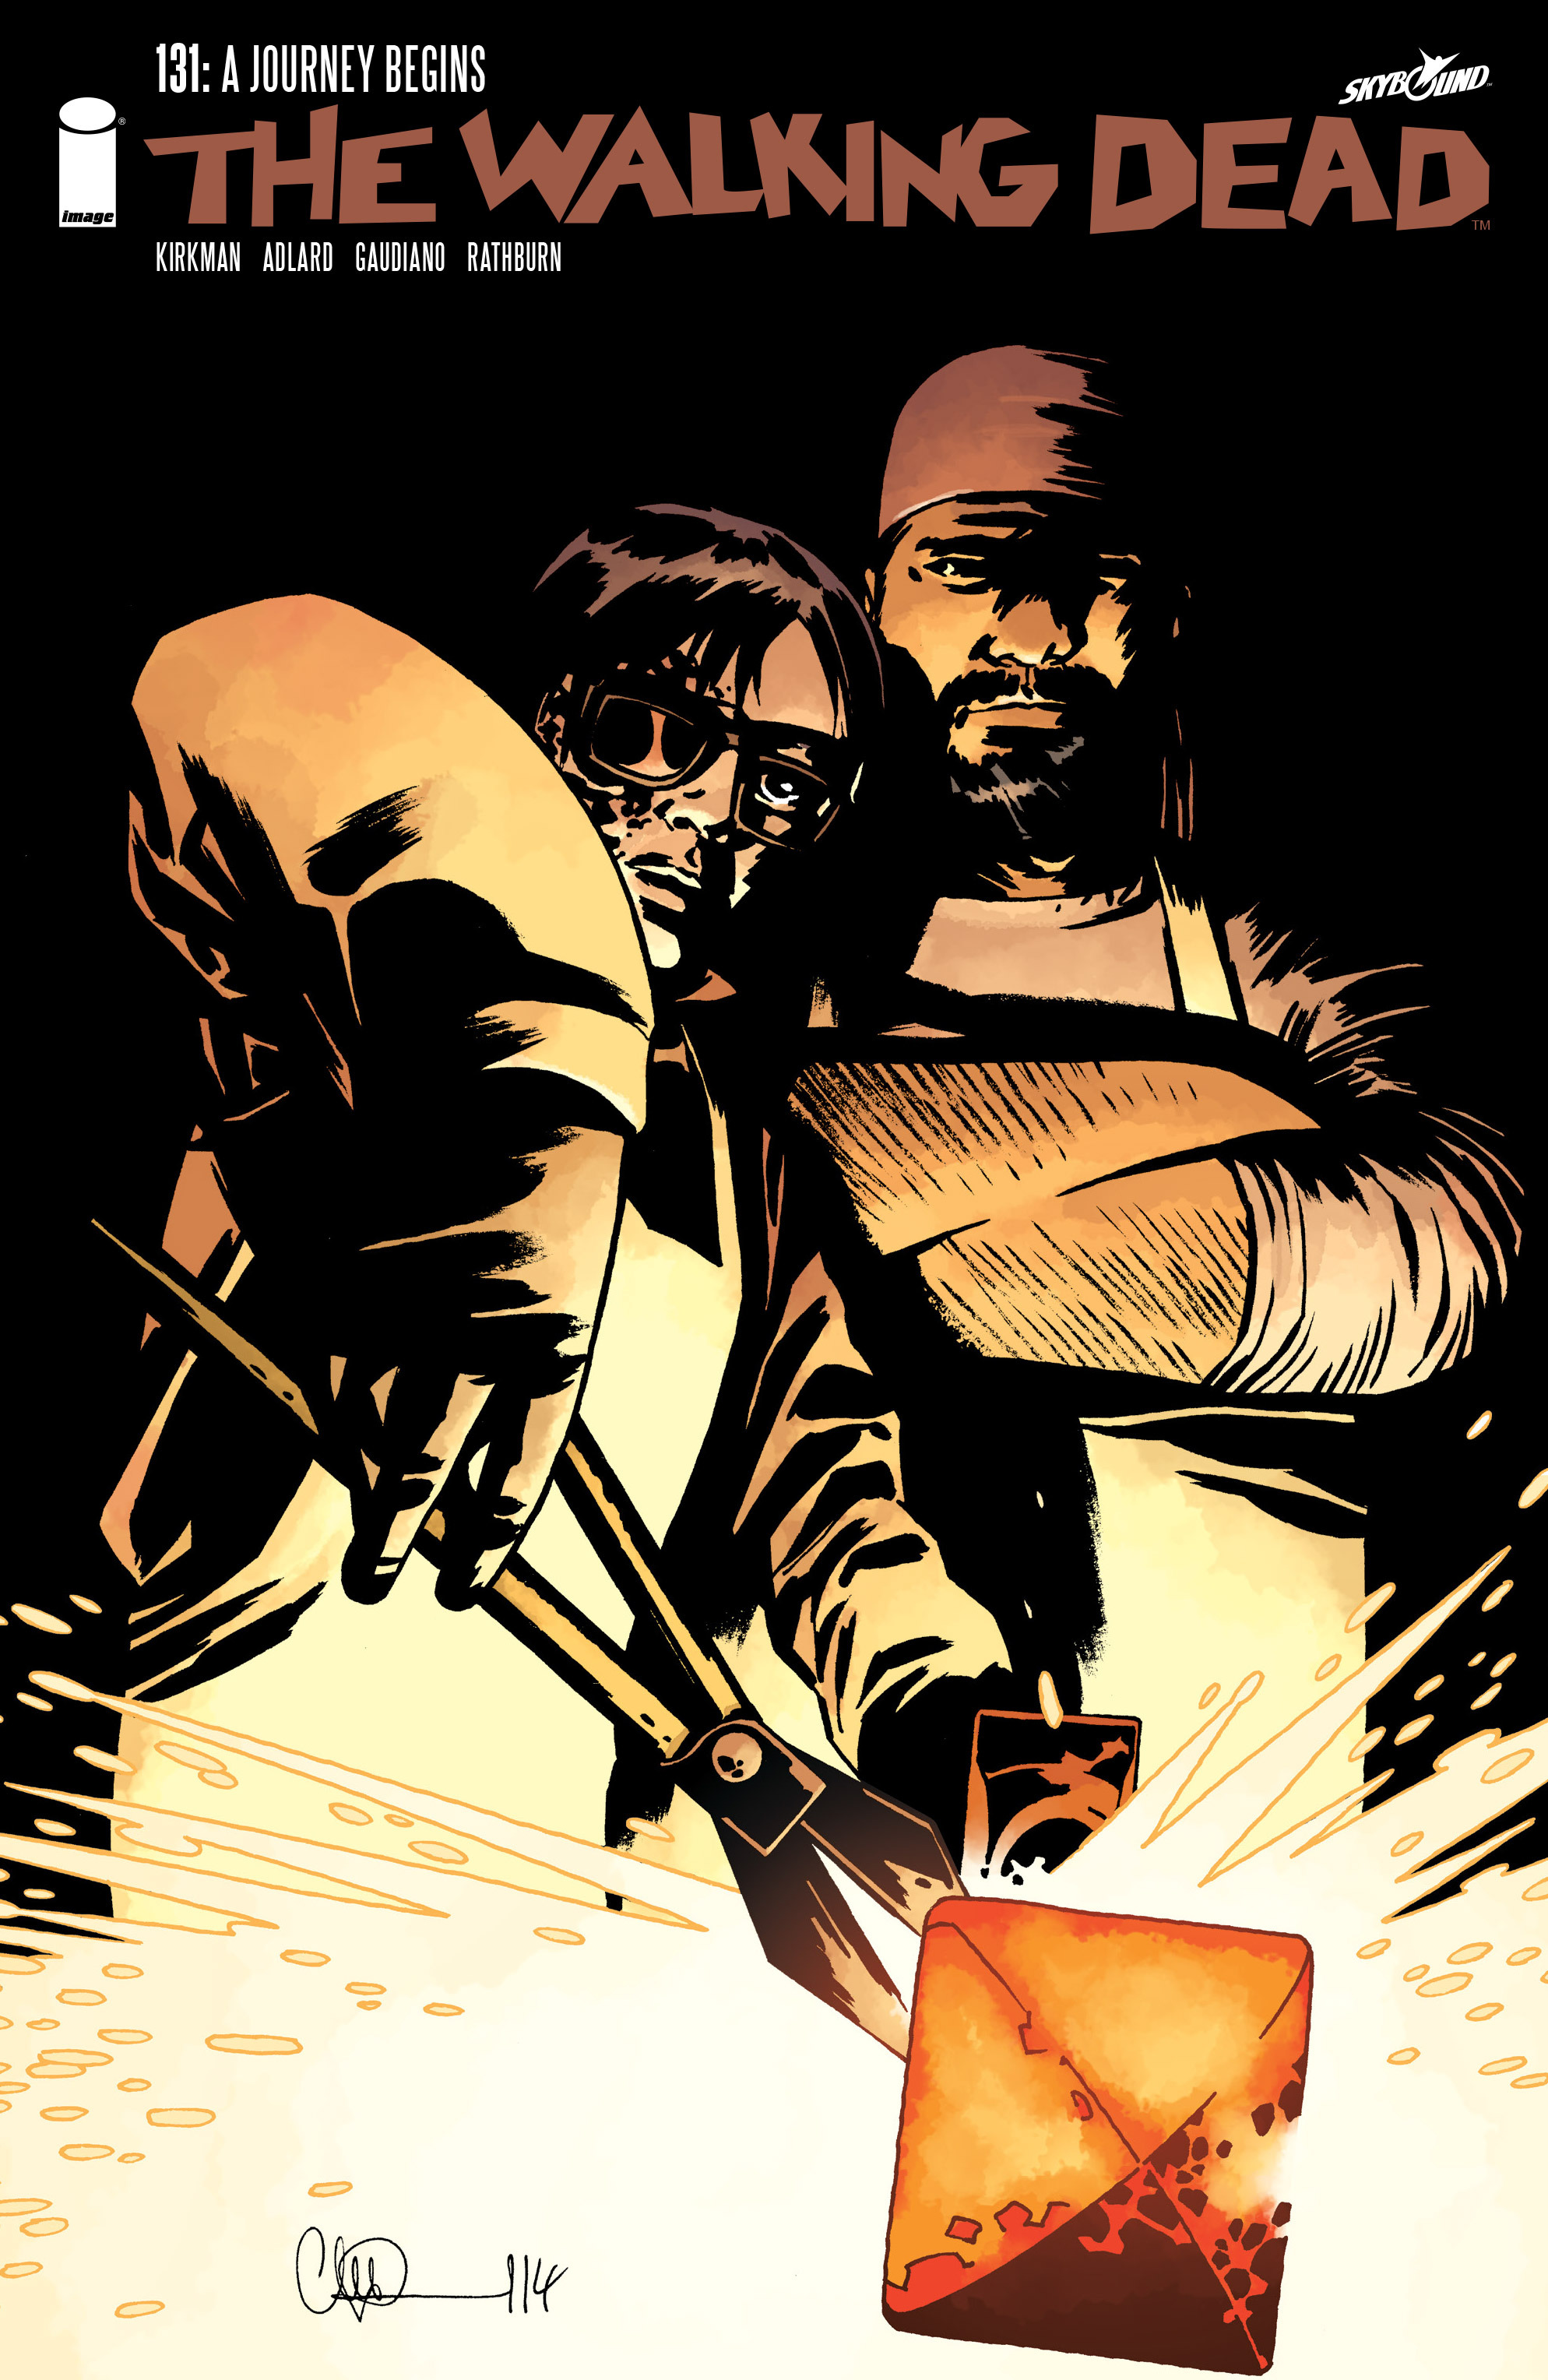 The Walking Dead 131 Page 1